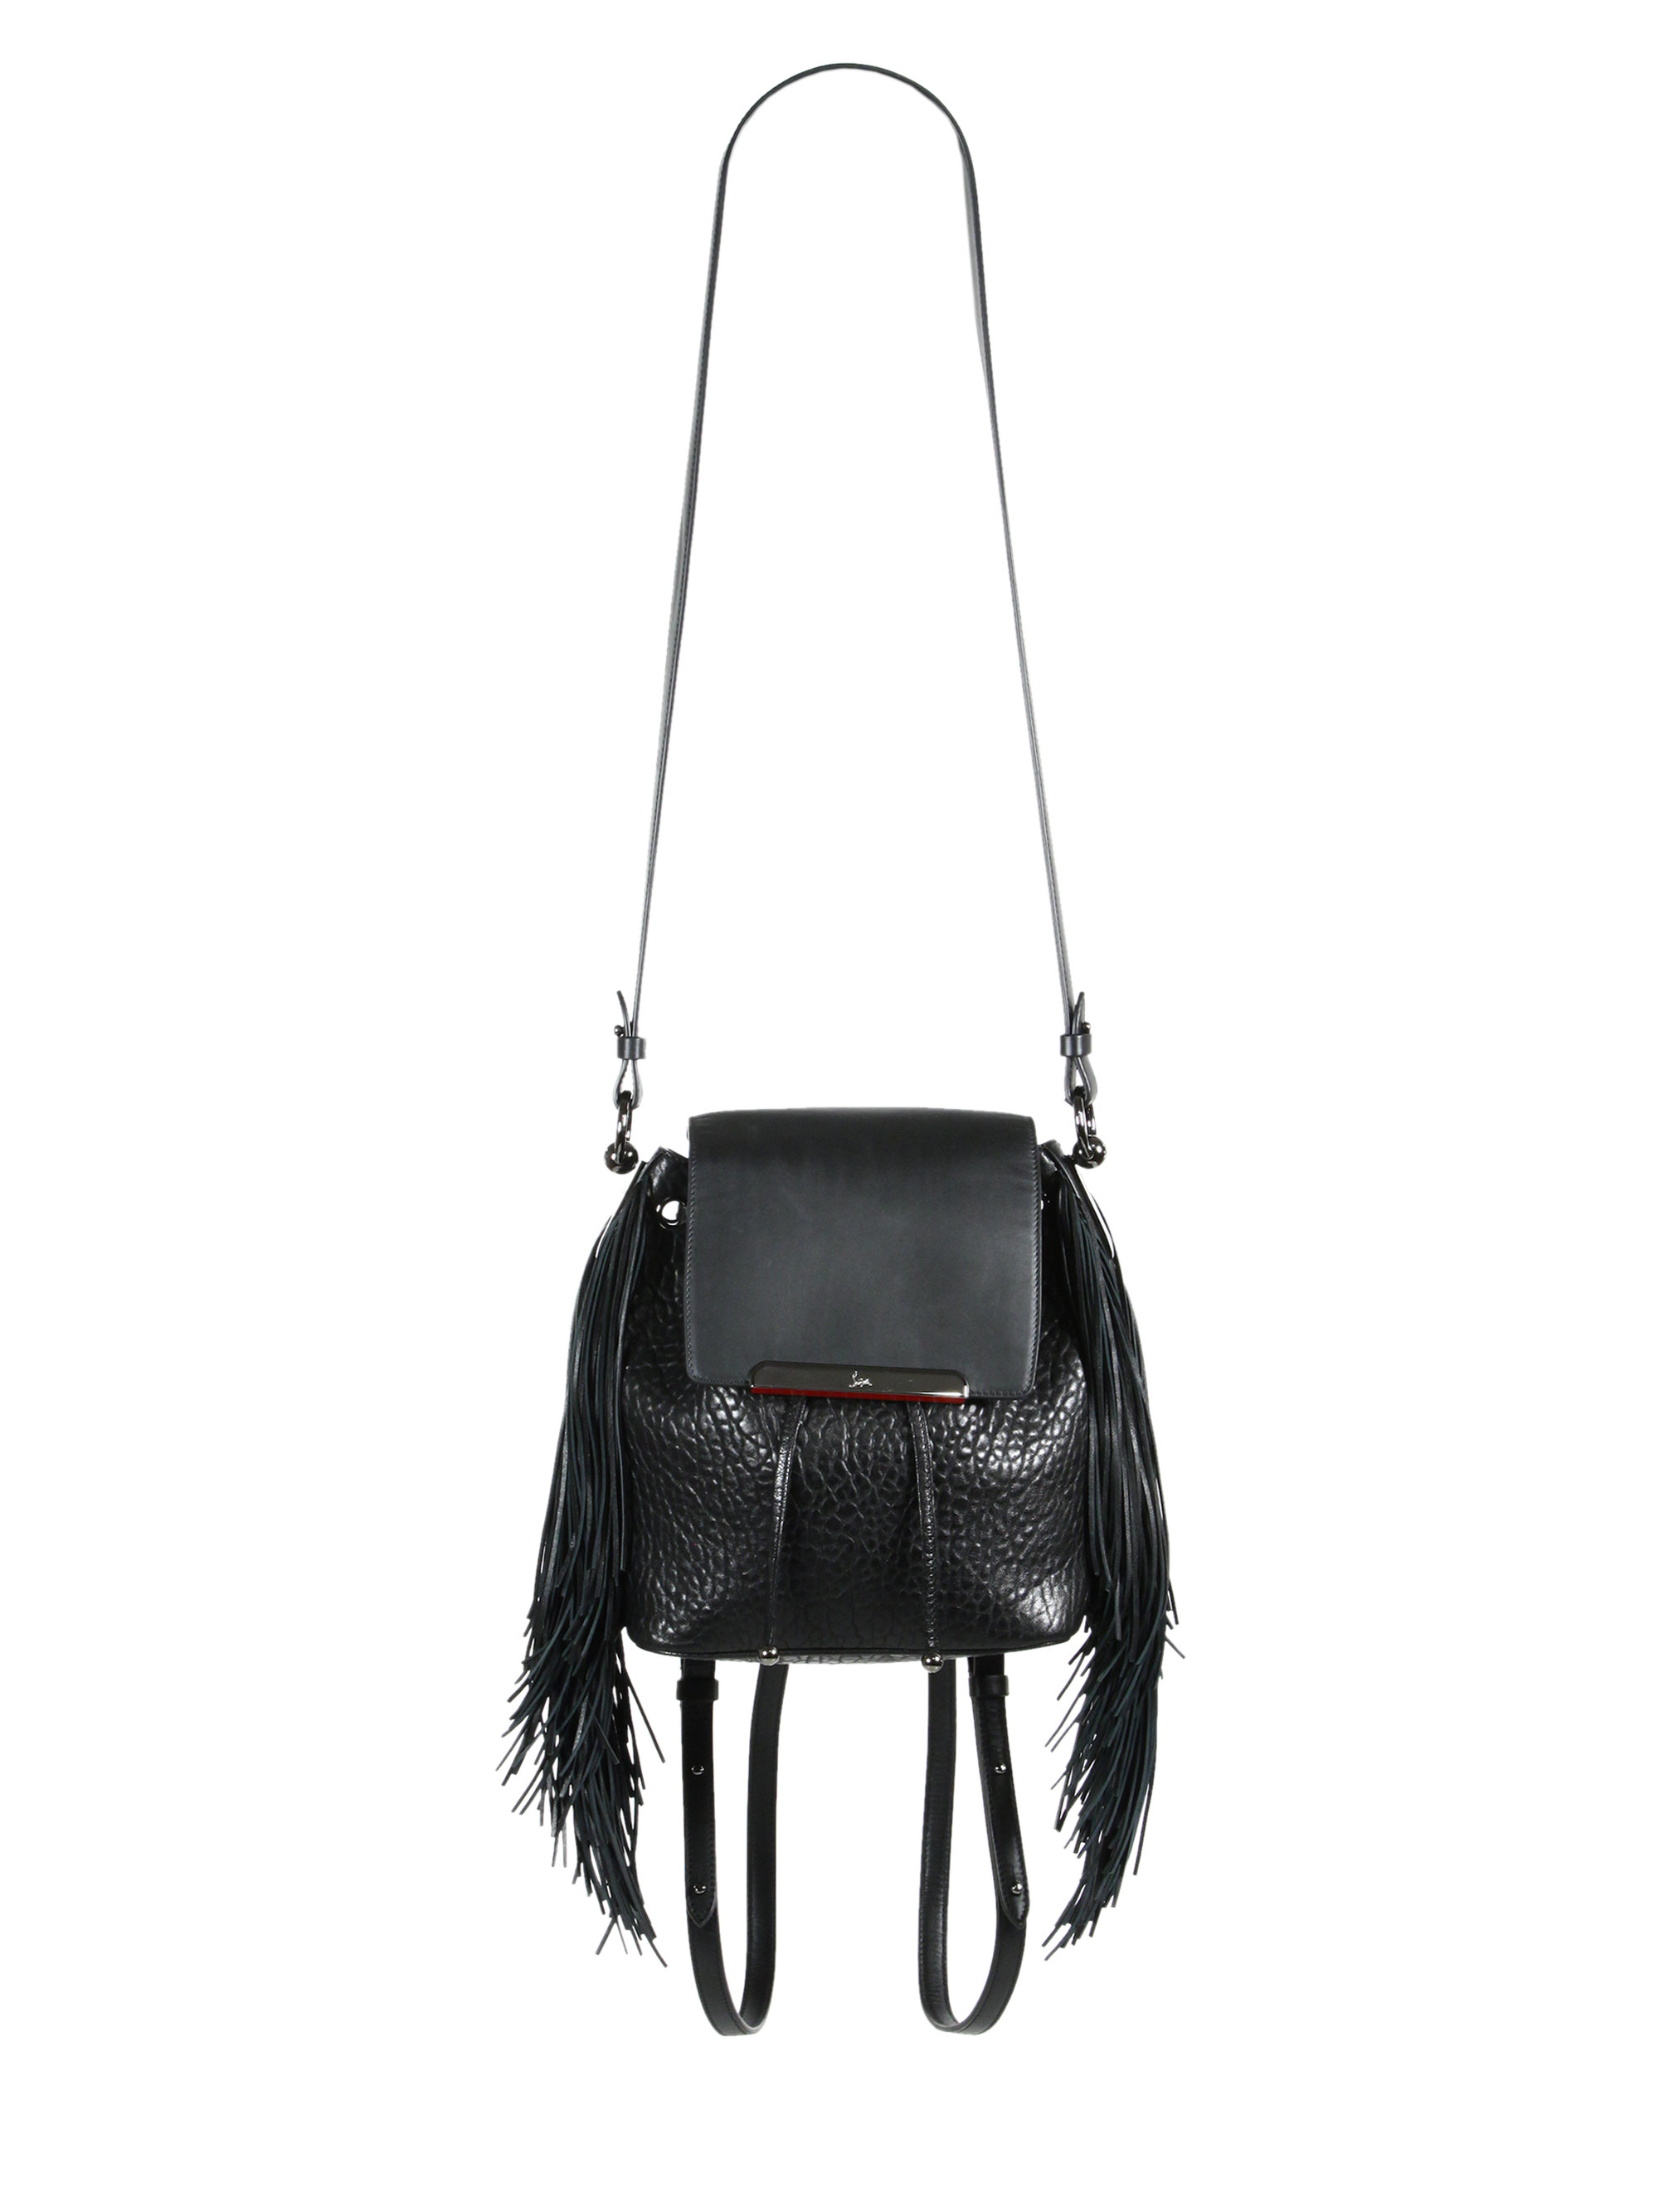 8d029a7595 Christian Louboutin Lucky L Convertible Fringed Pebbled Leather ...